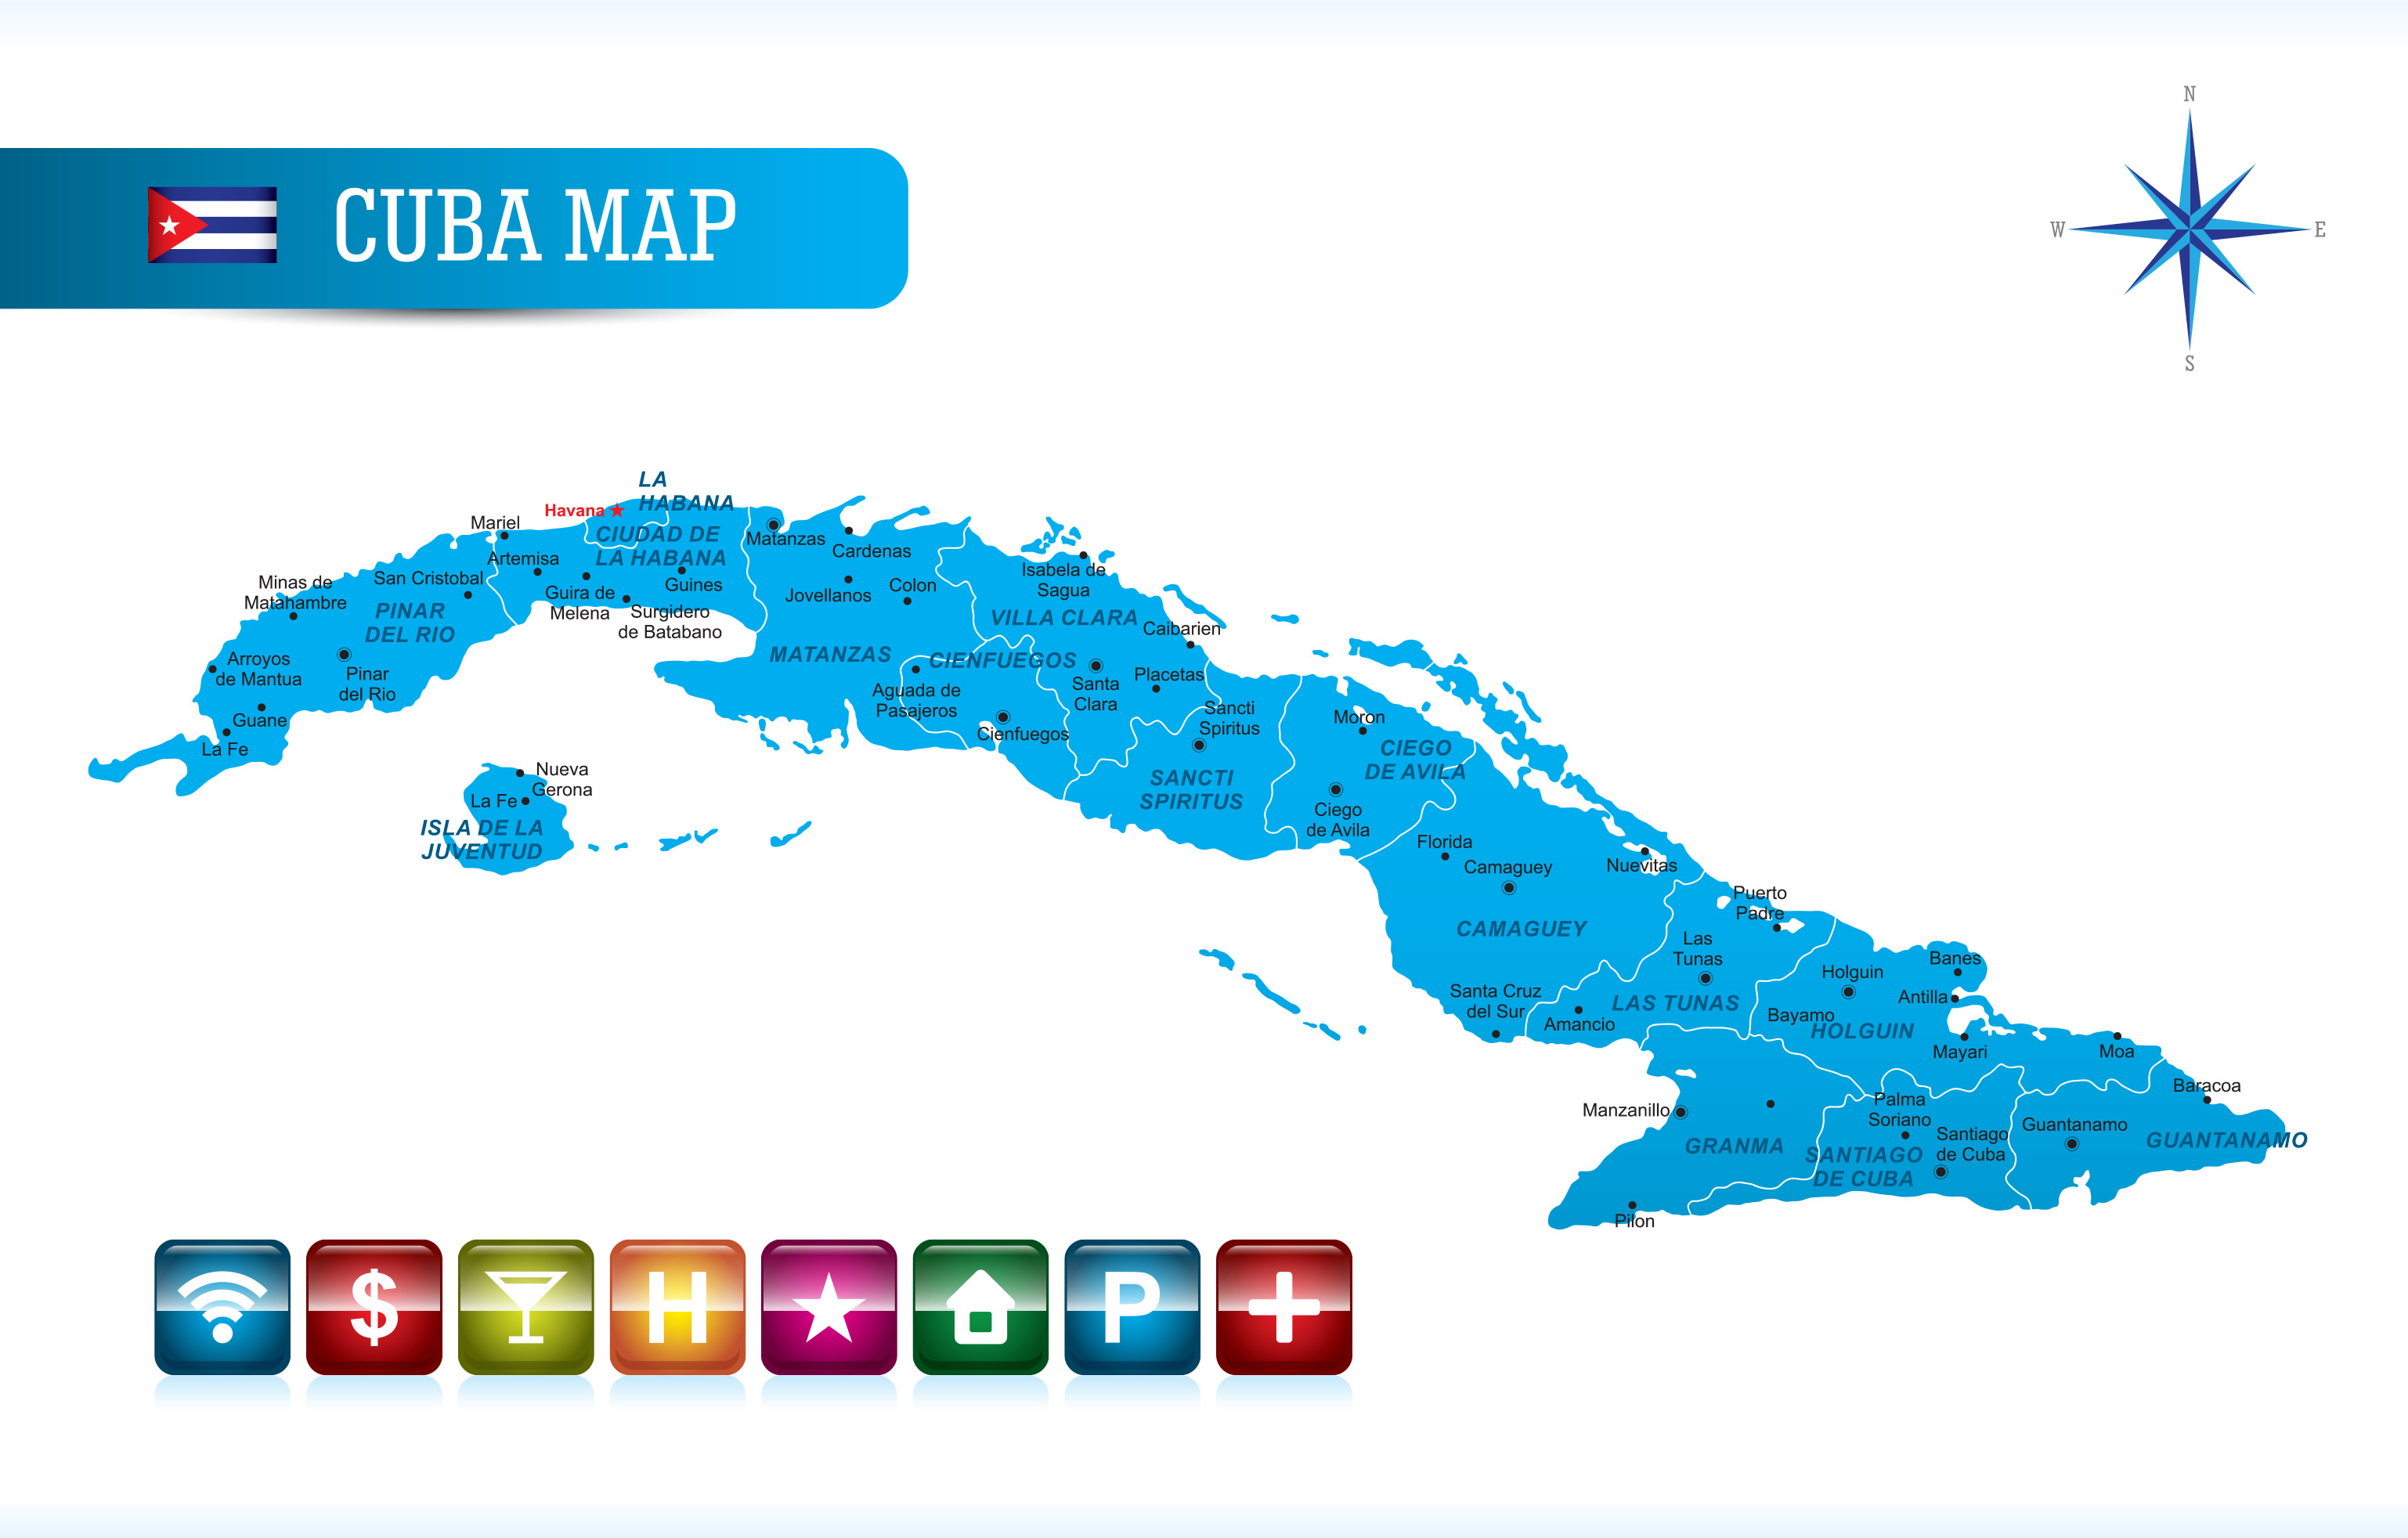 Cuba Map with Navigation